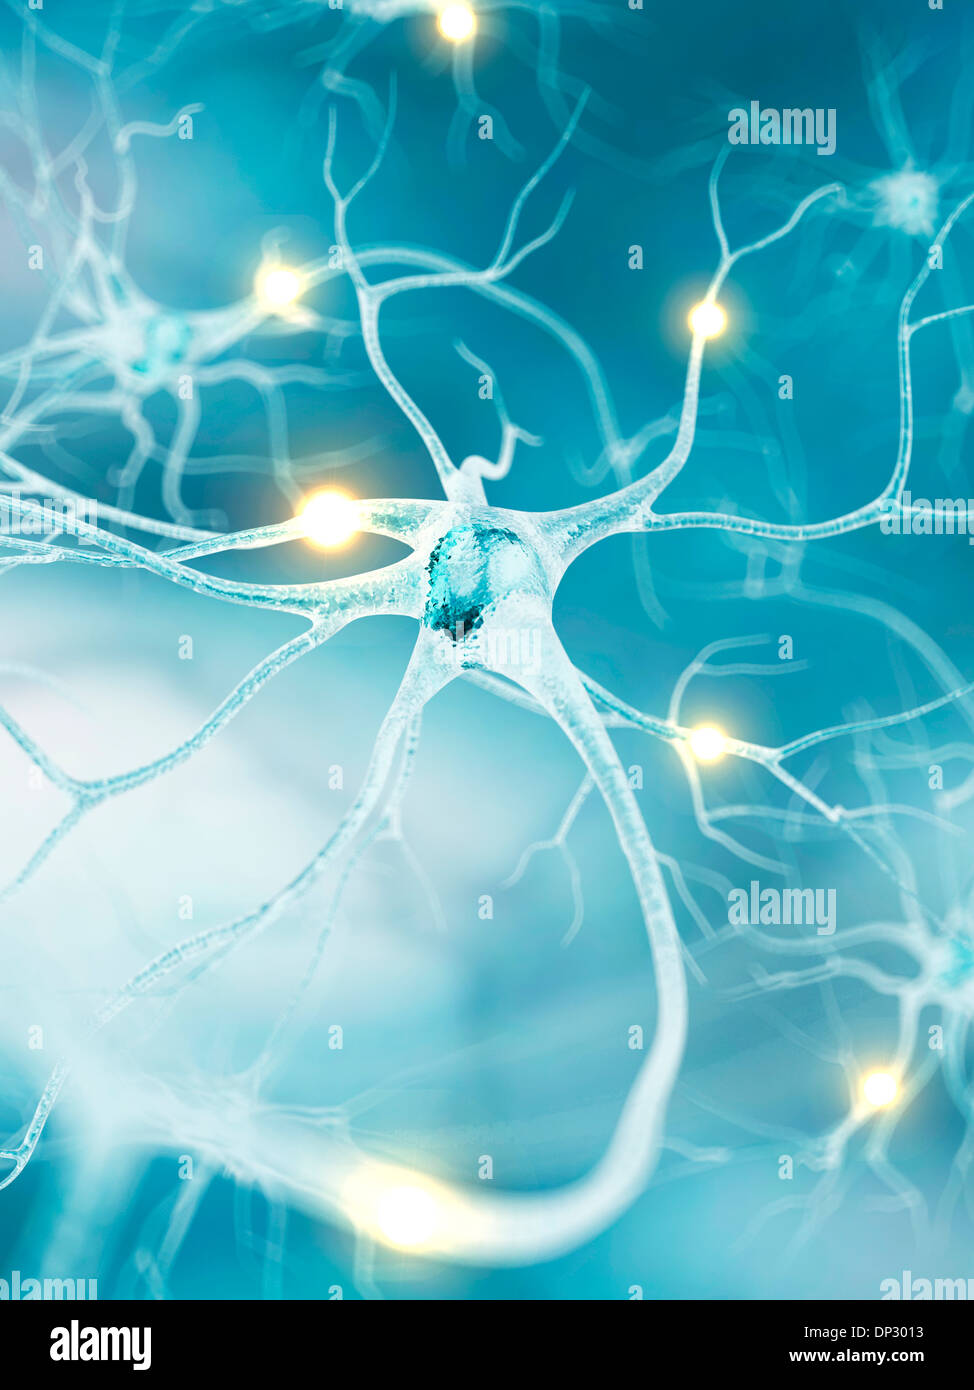 Active nerve cells, artwork - Stock Image